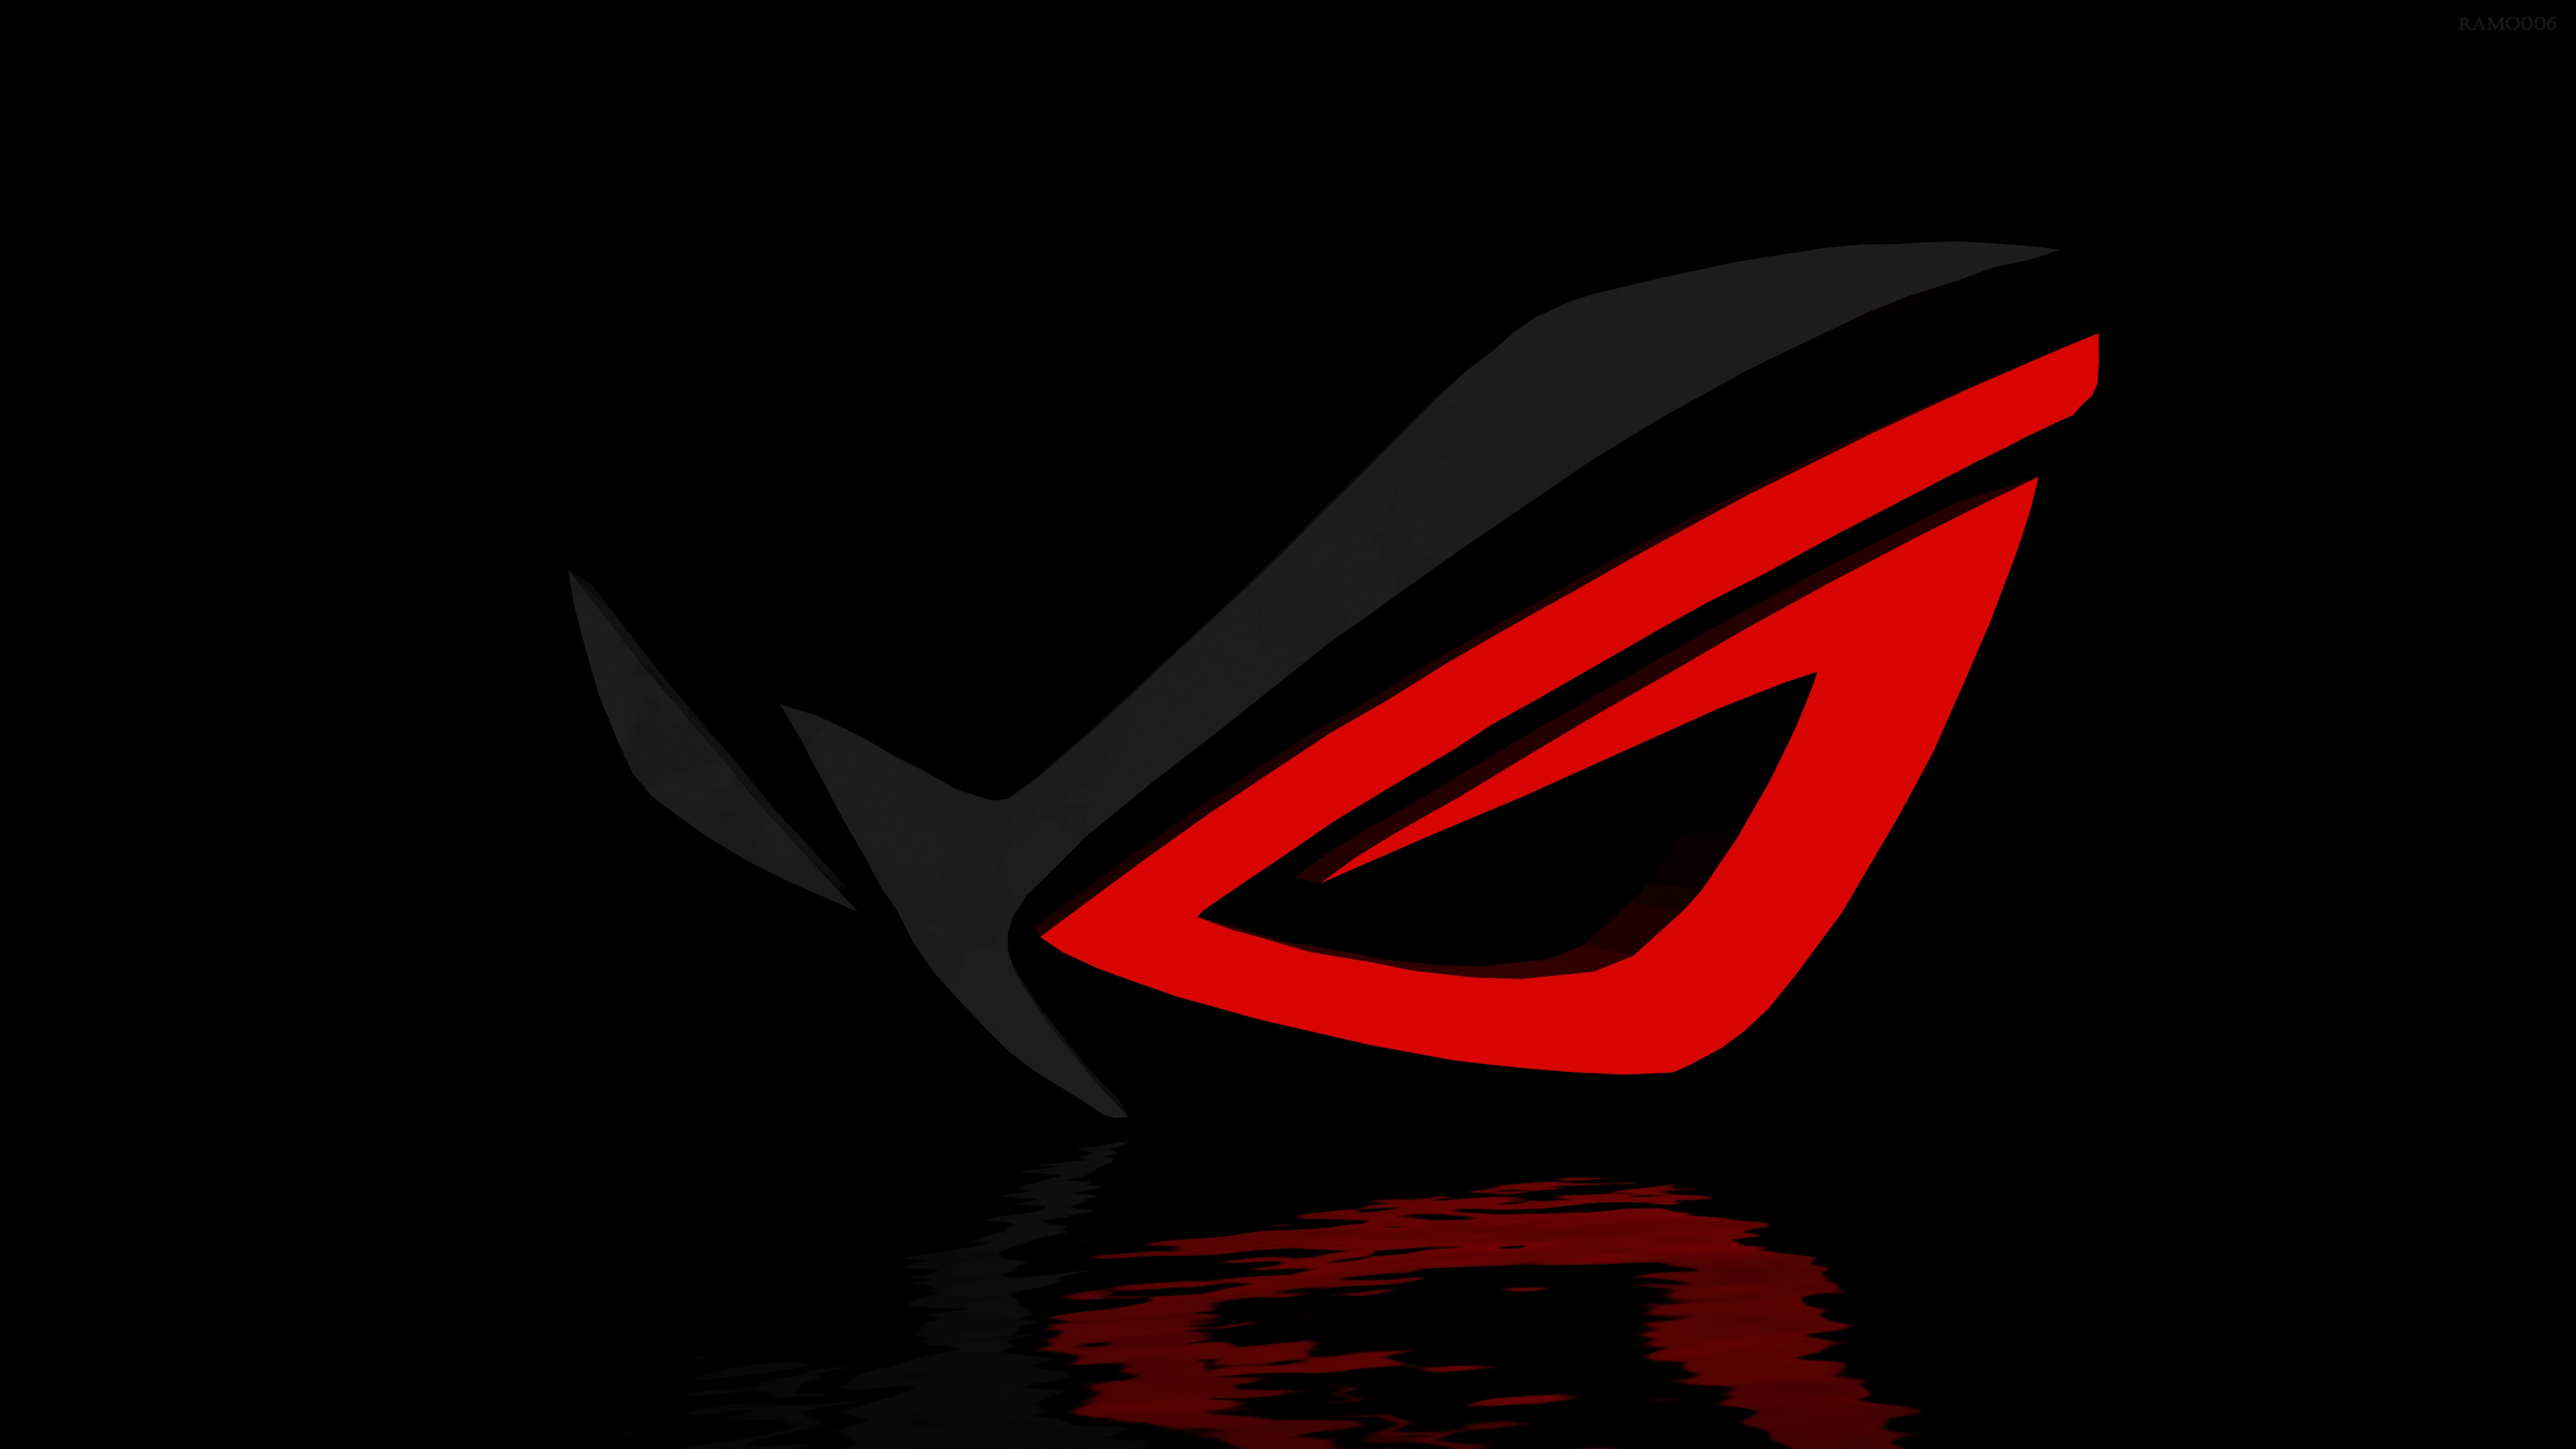 ROG 4K Wallpaper Collection 2014